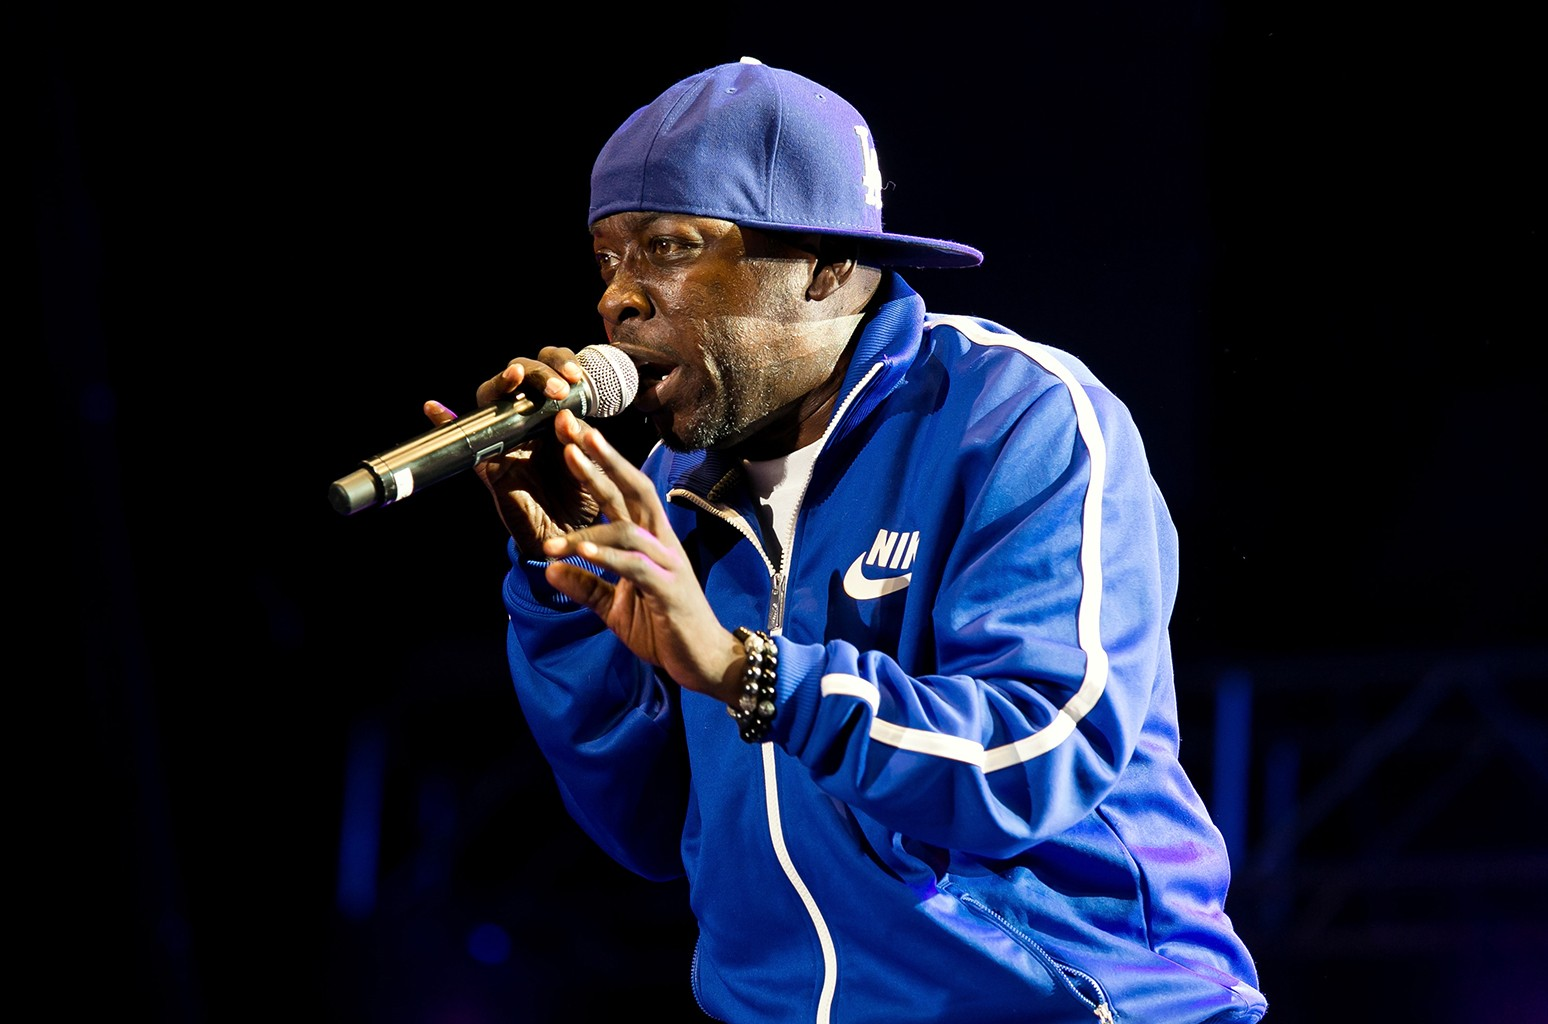 Phife Dawg of A Tribe Called Quest